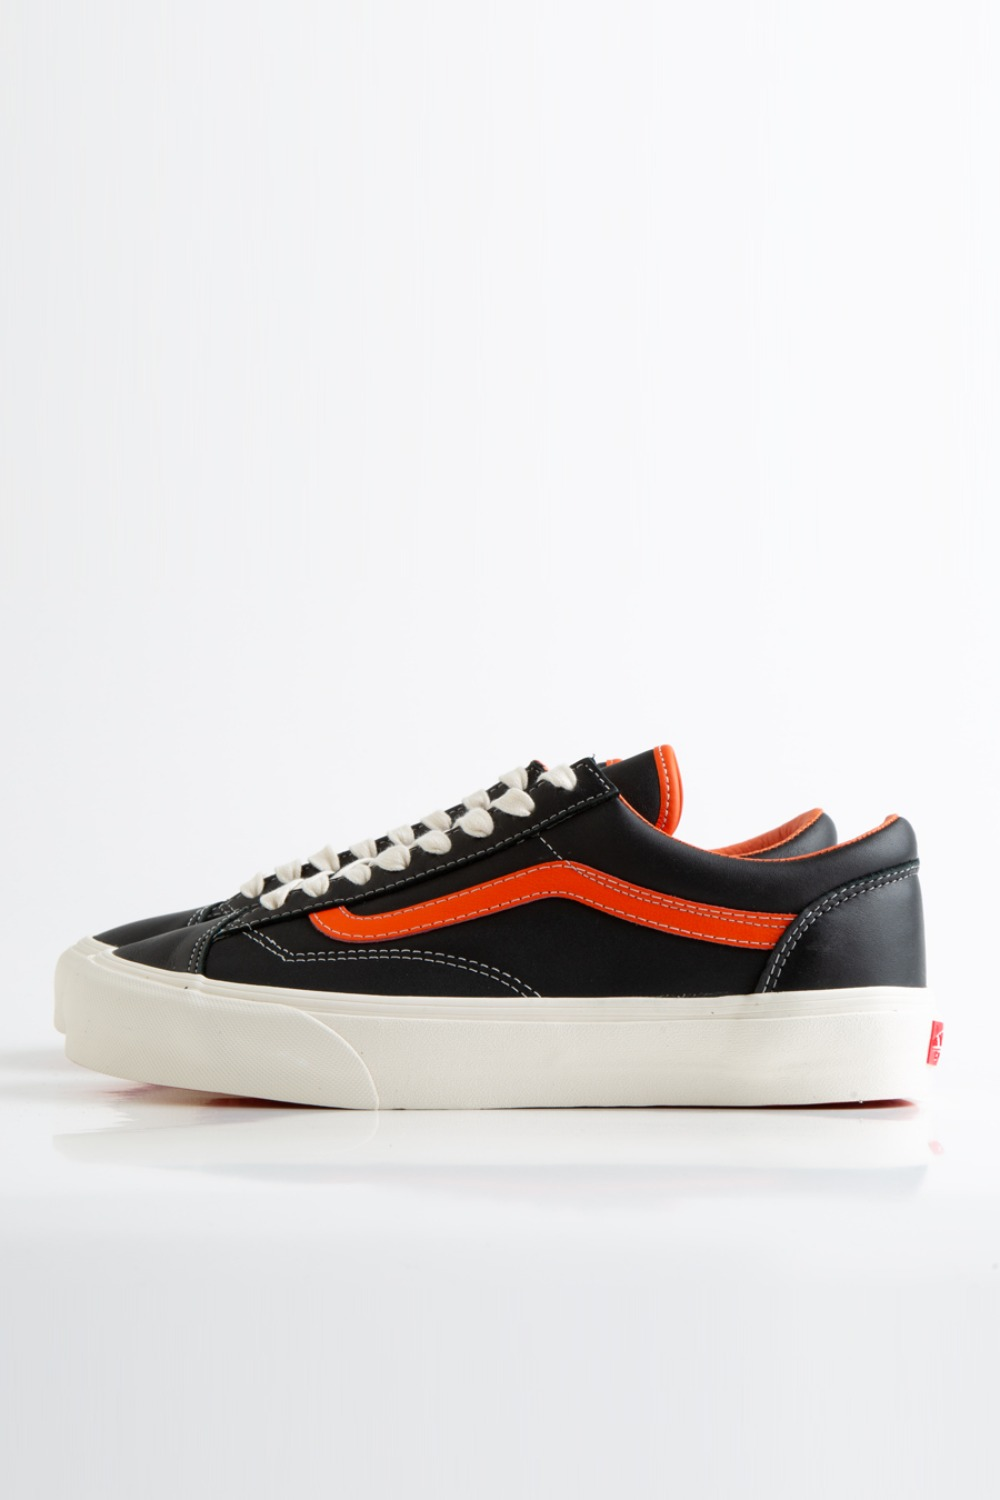 STYLE 36 VLT LX(LEATHER) FLAME/BLACK